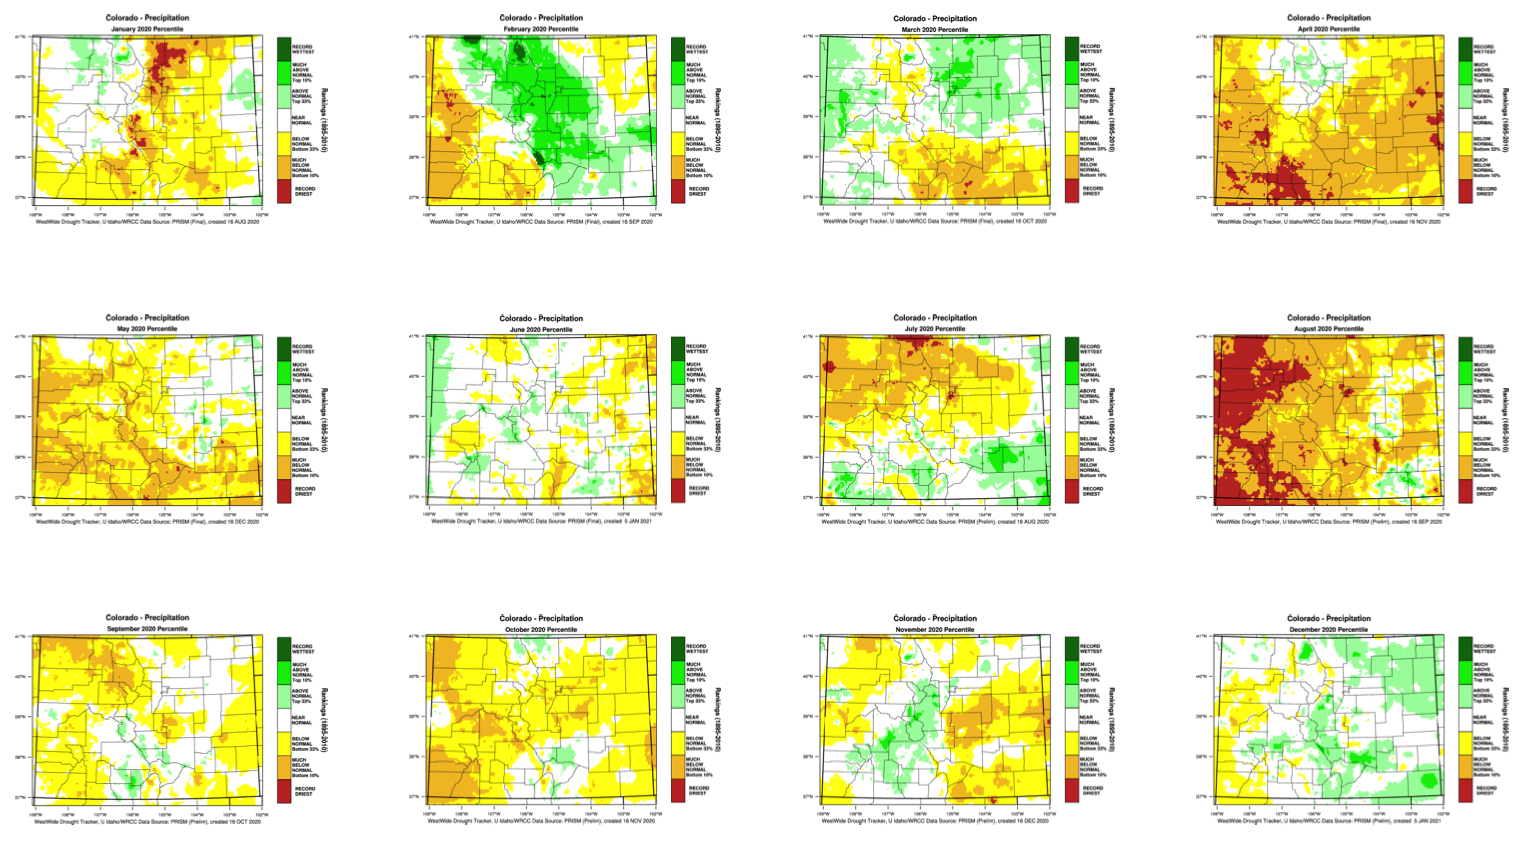 image: 2020 was Colorado's 2nd driest year on record, a progression in images